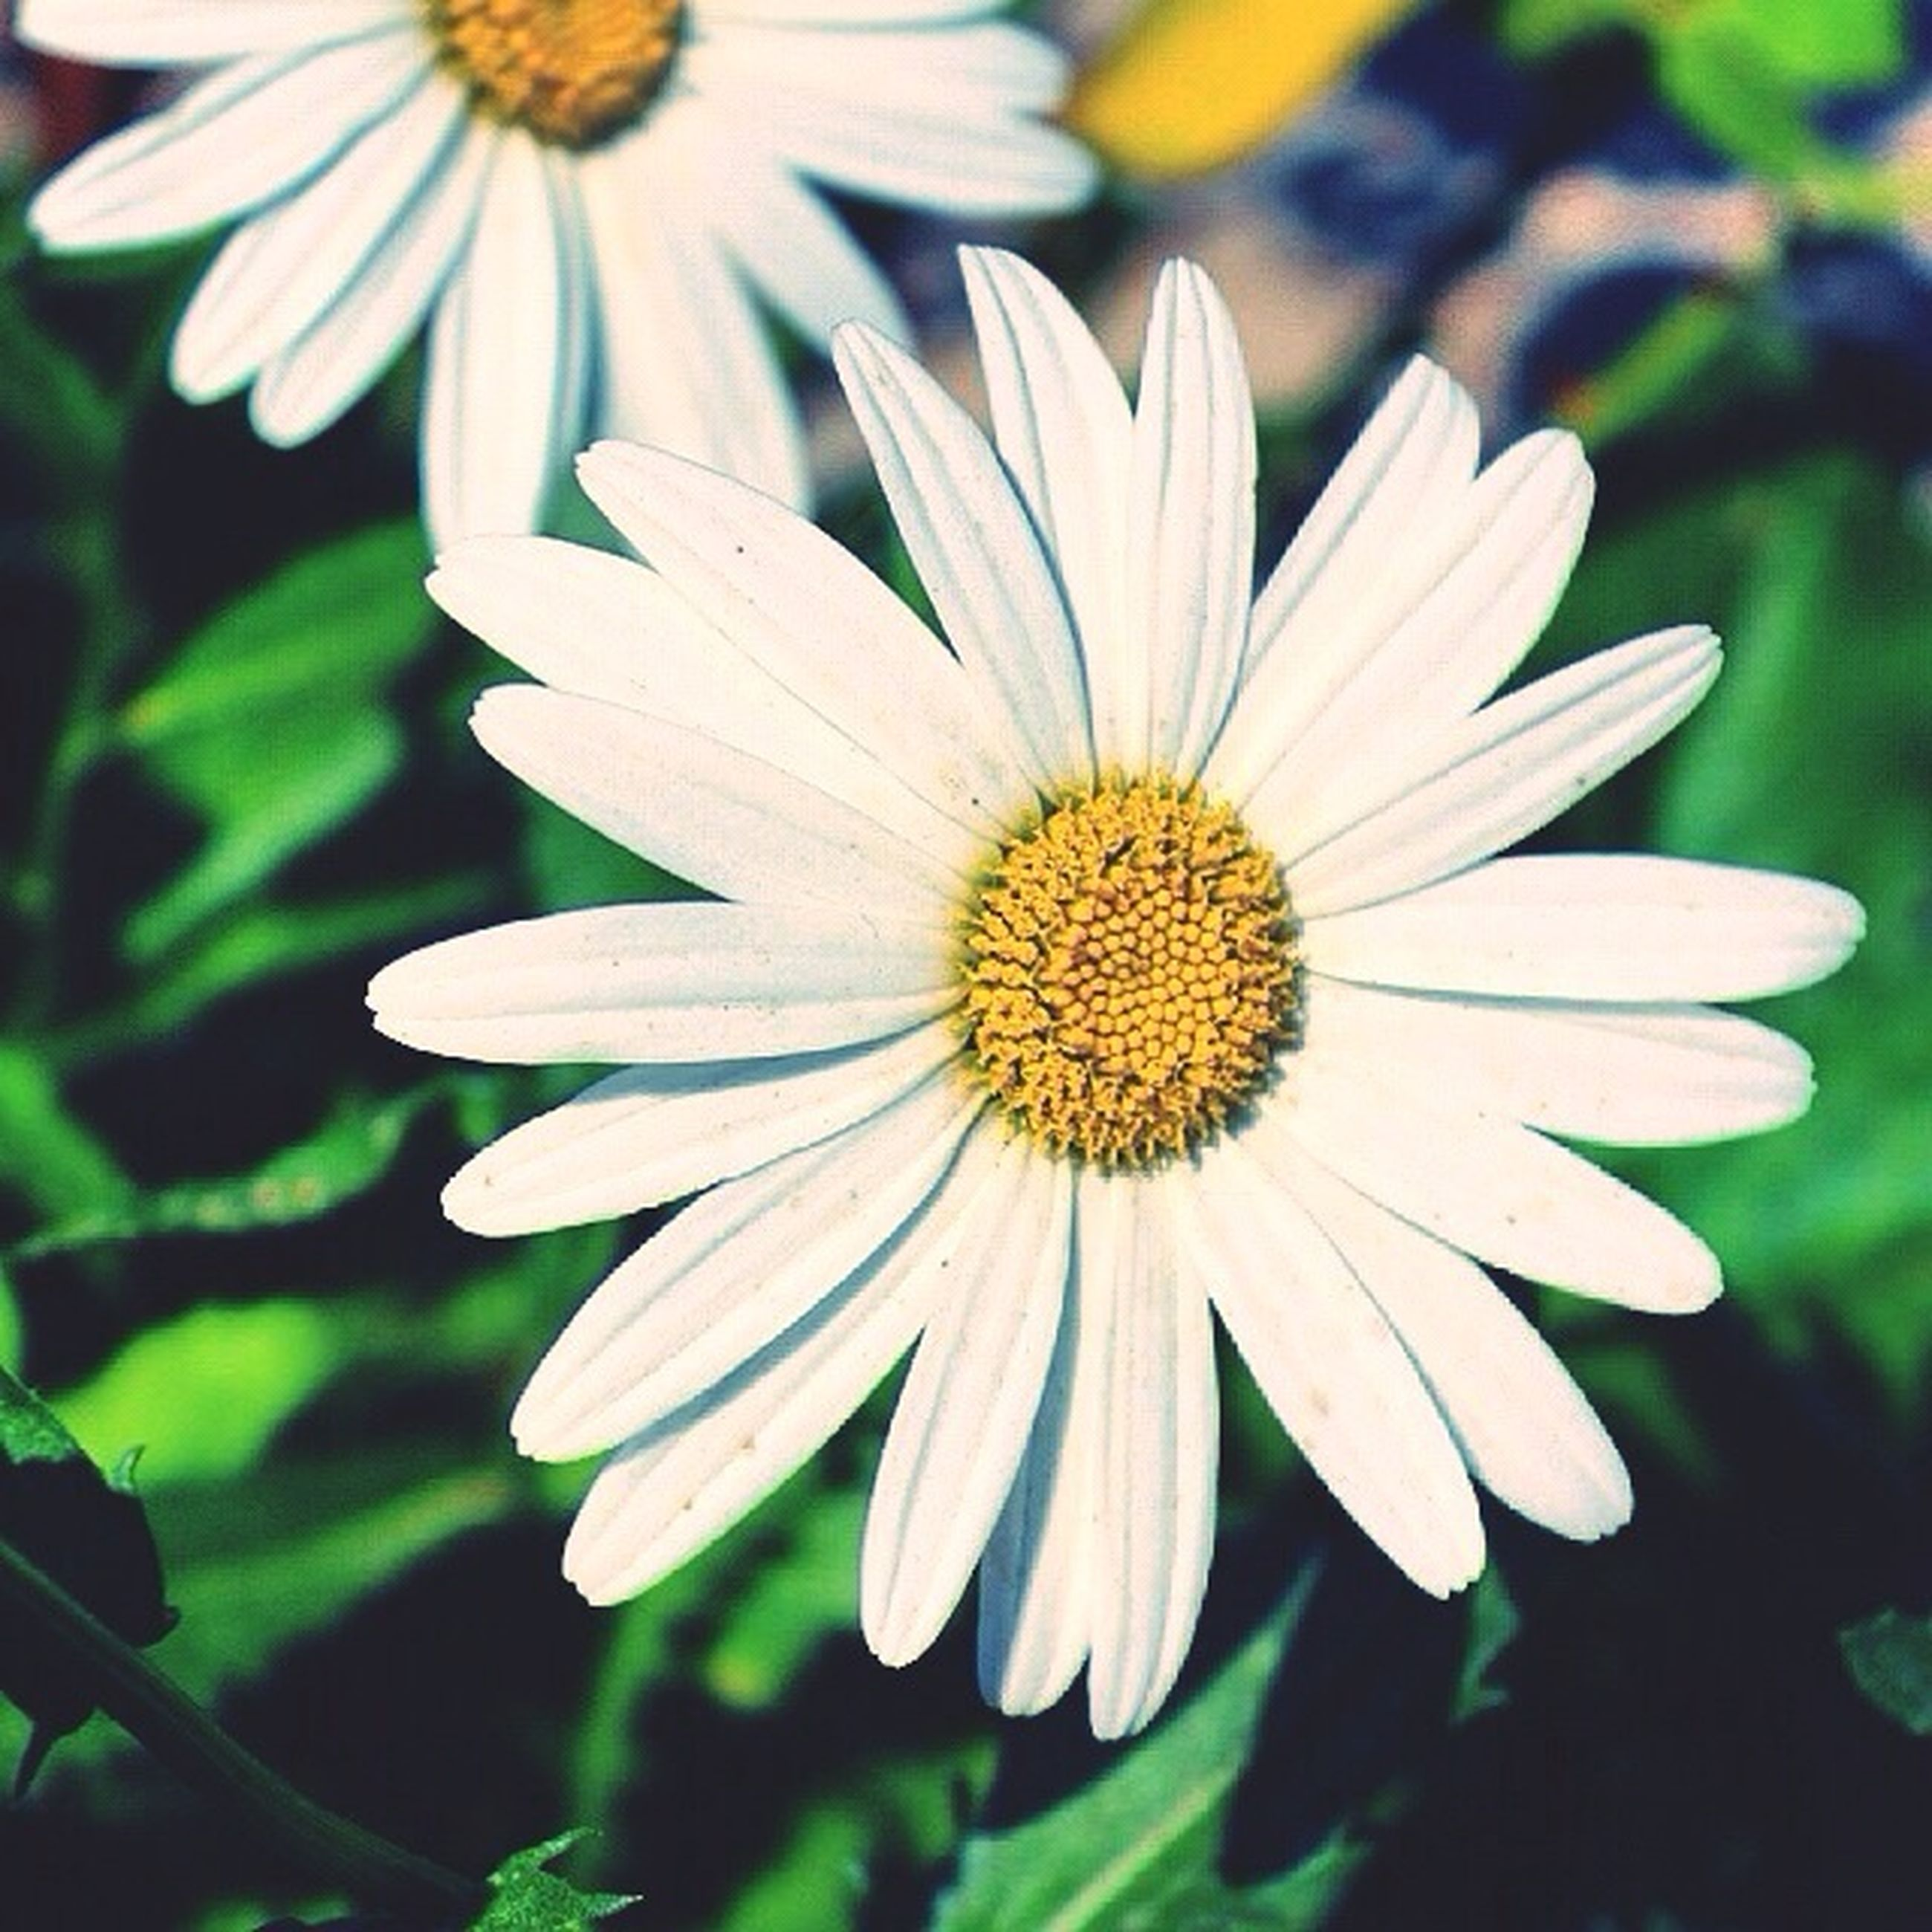 flower, petal, freshness, flower head, fragility, pollen, growth, close-up, beauty in nature, daisy, blooming, focus on foreground, nature, white color, single flower, yellow, in bloom, plant, stamen, day